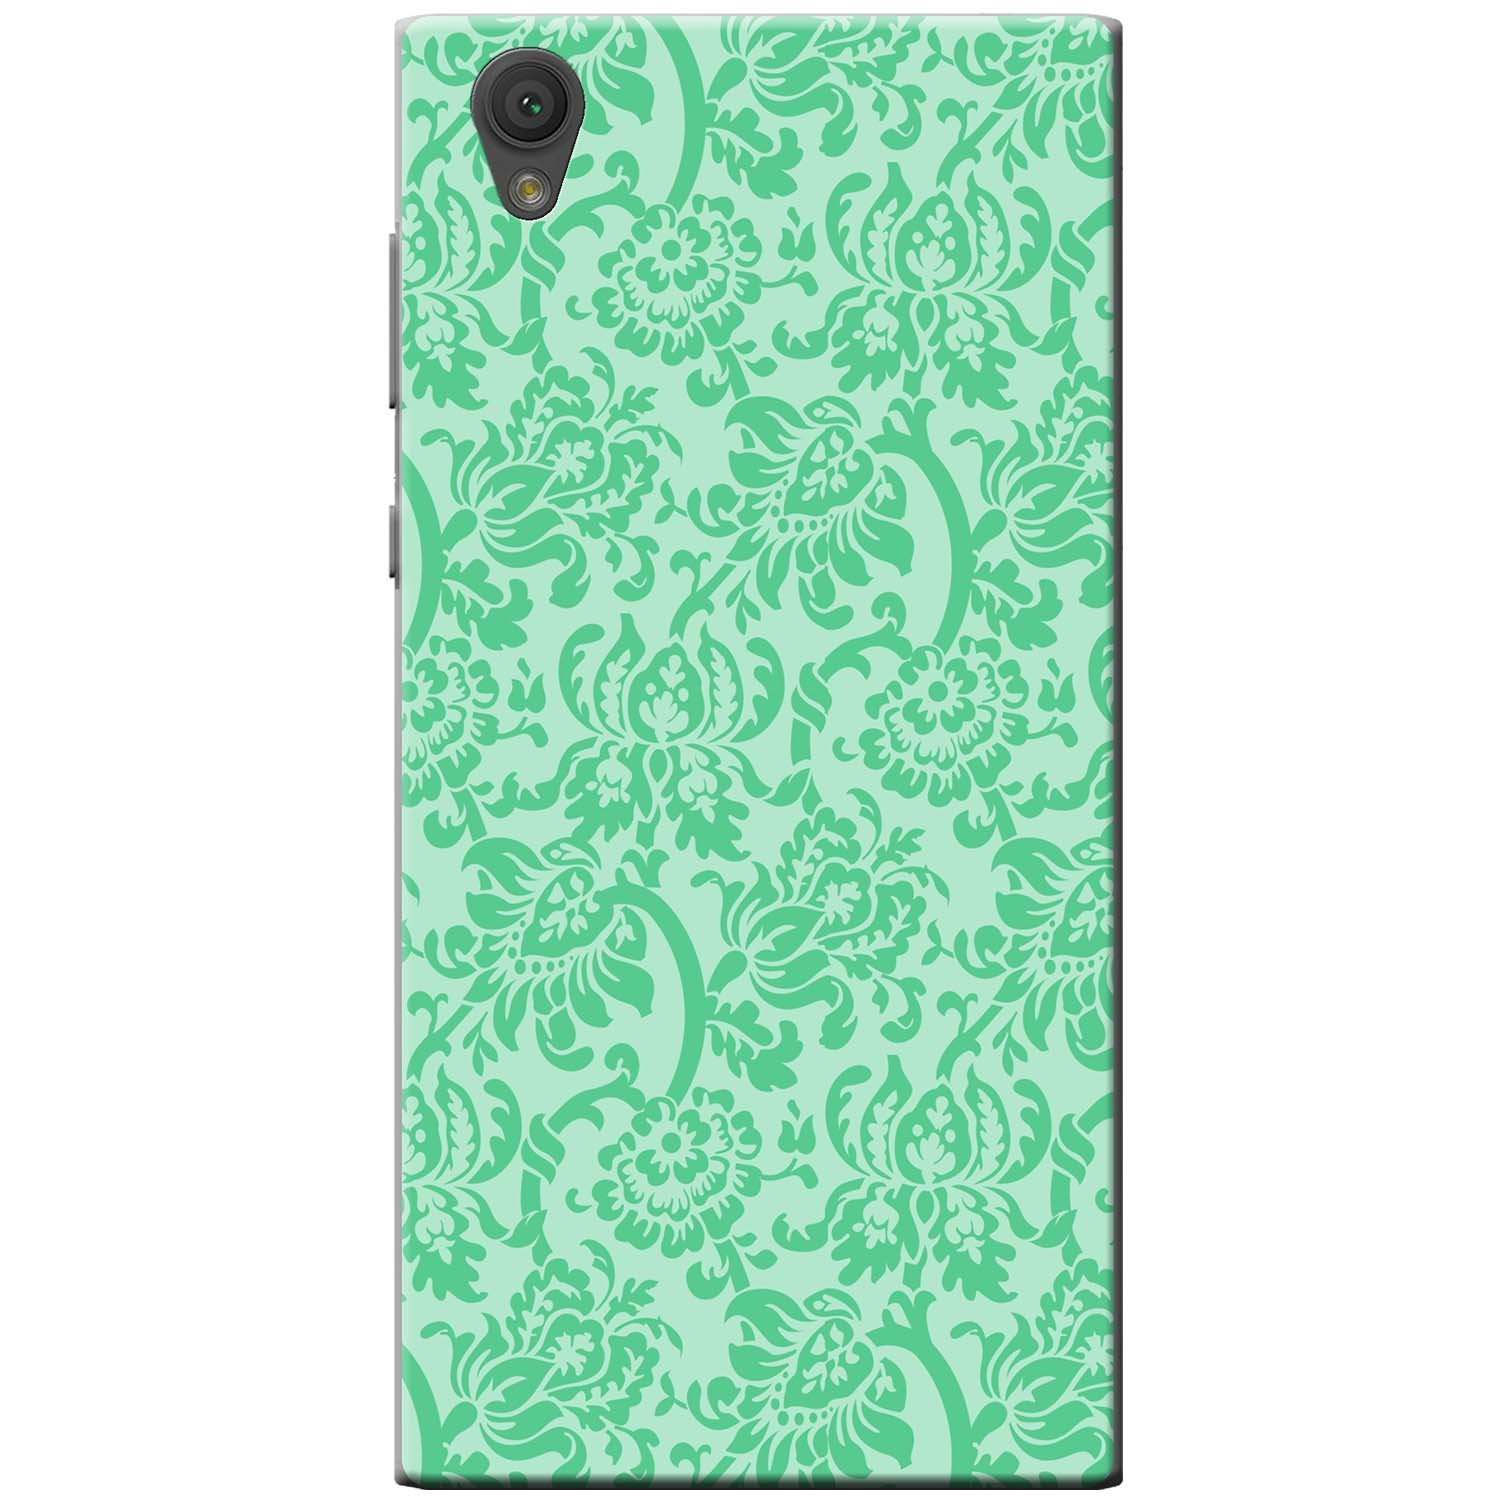 Mint Green Floral Wallpaper Design Hard Case For Sony Xperia X